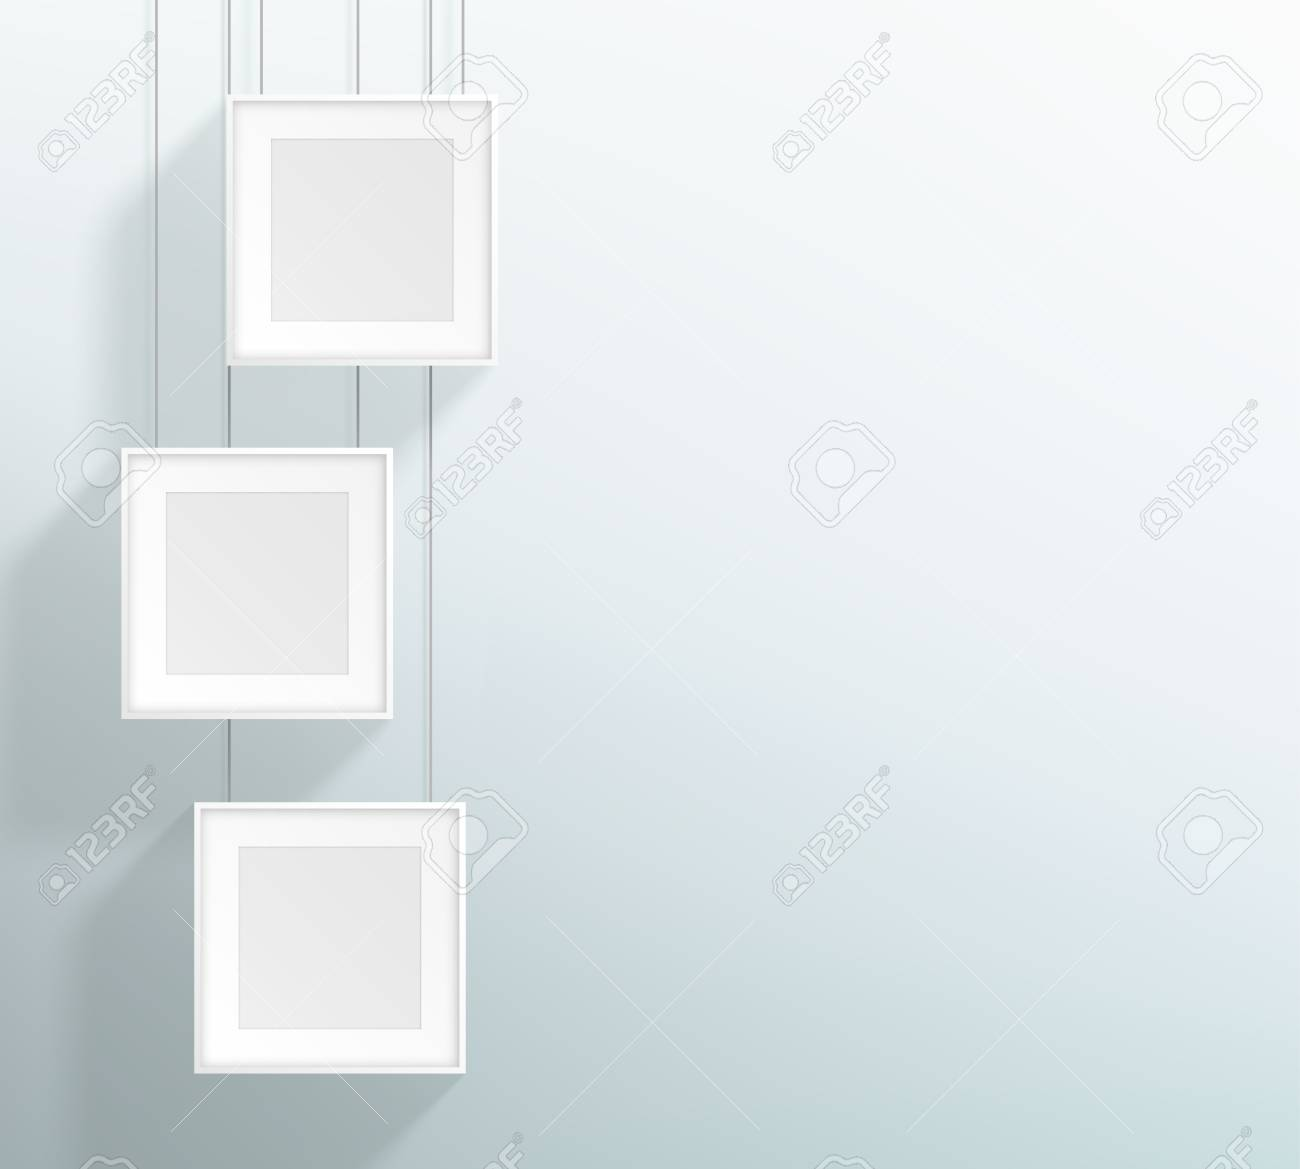 Vector 3 Blank White Realistic Square Hanging Frames Design Royalty ...